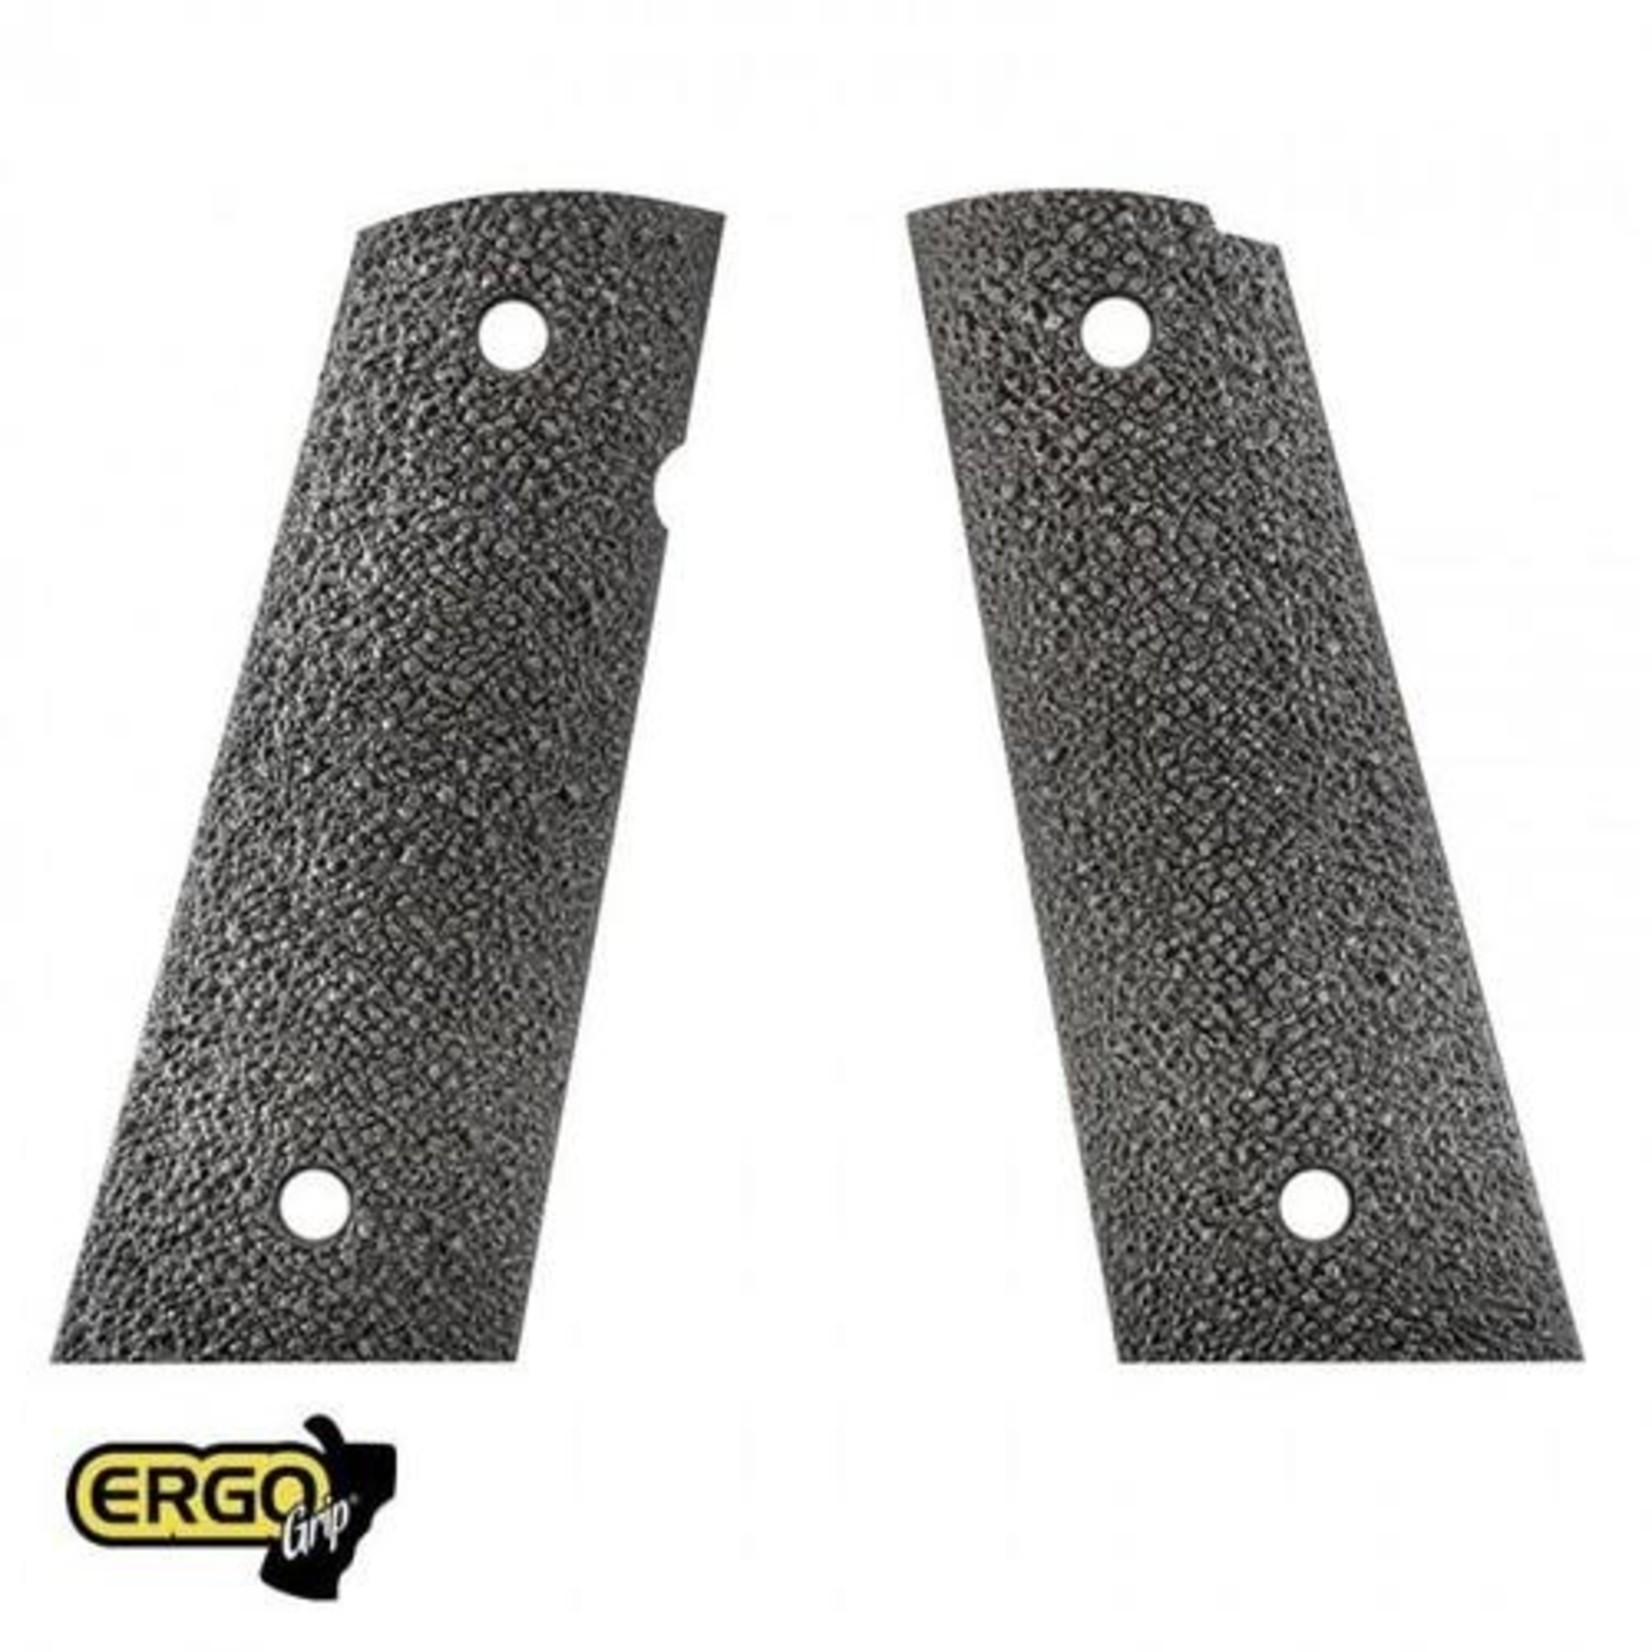 ERGO XTR SQUARE BOTTOM HARD RUBBER 1911 GRIP